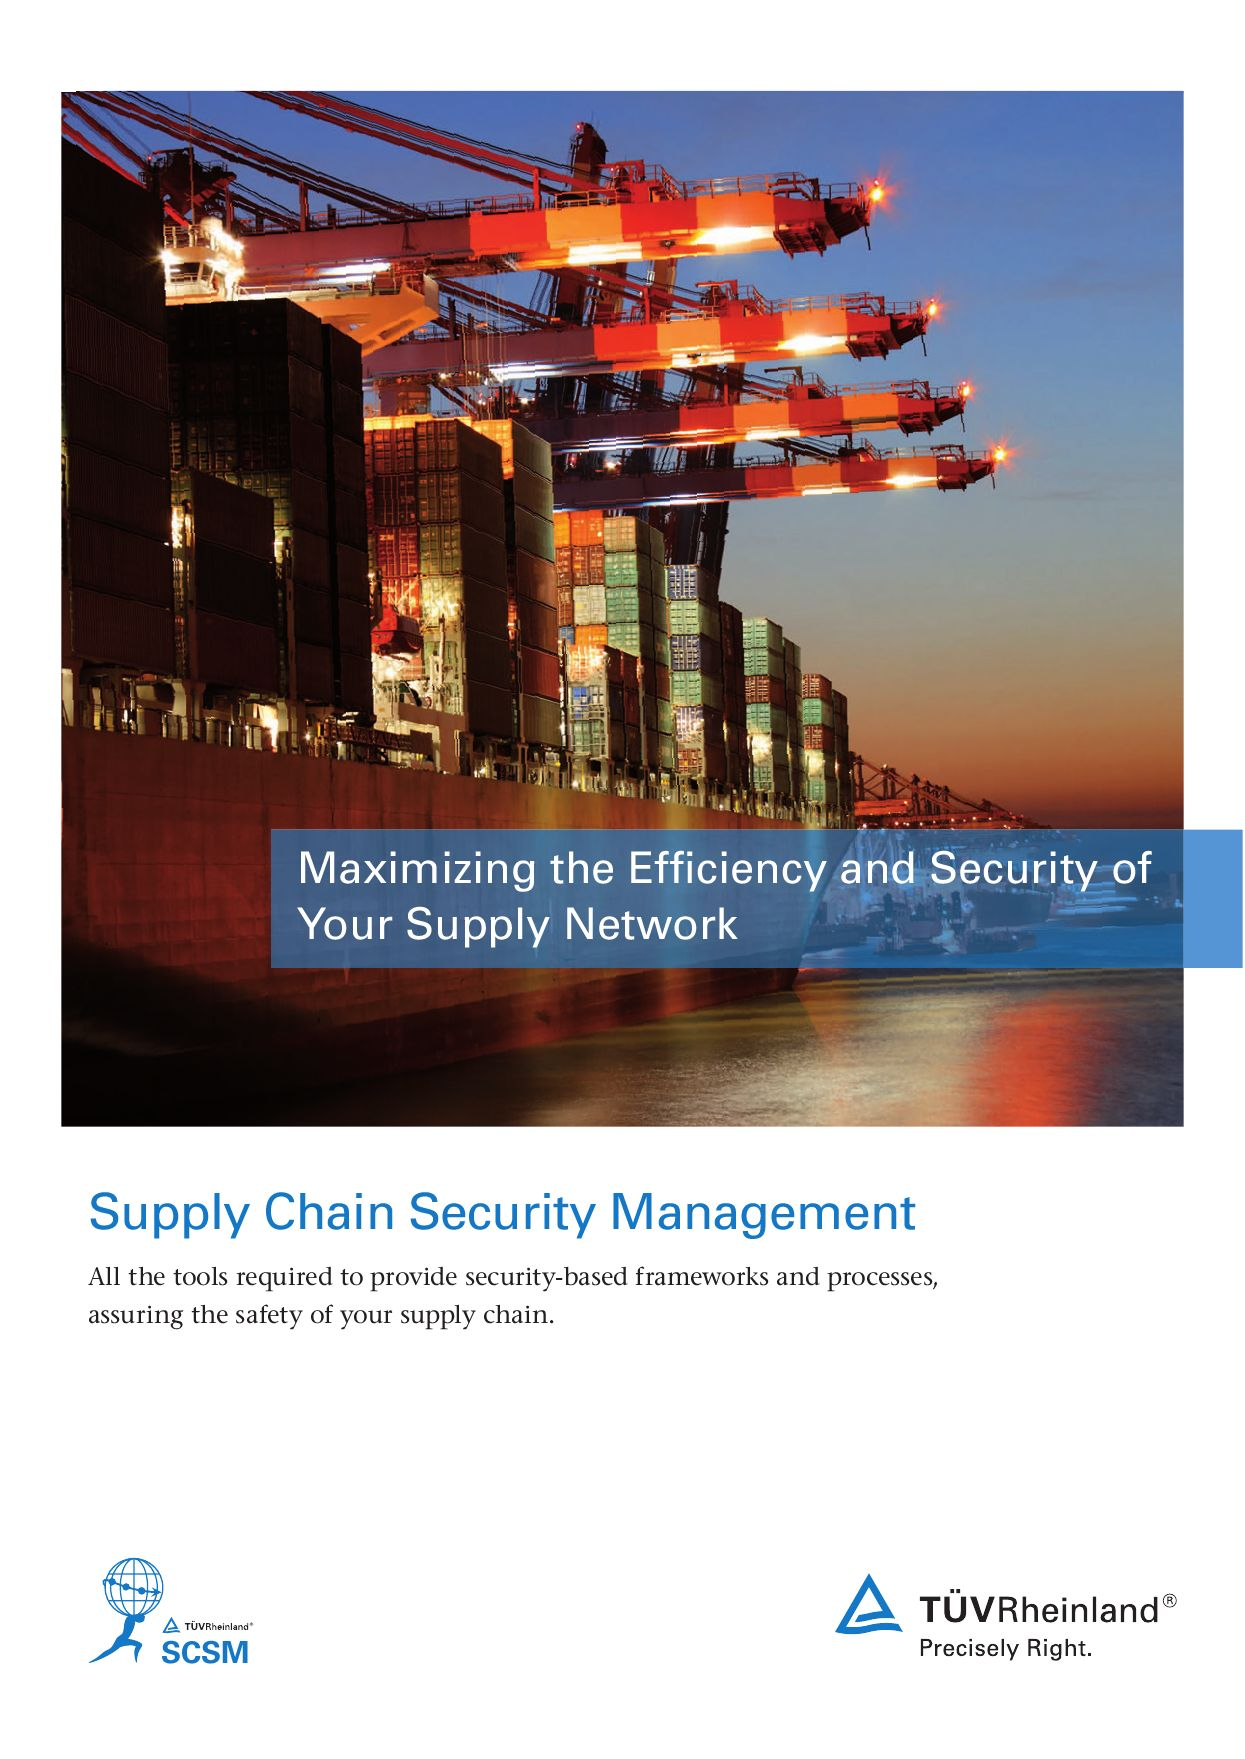 Supply Chain Management by TUV Rheinland - issuu